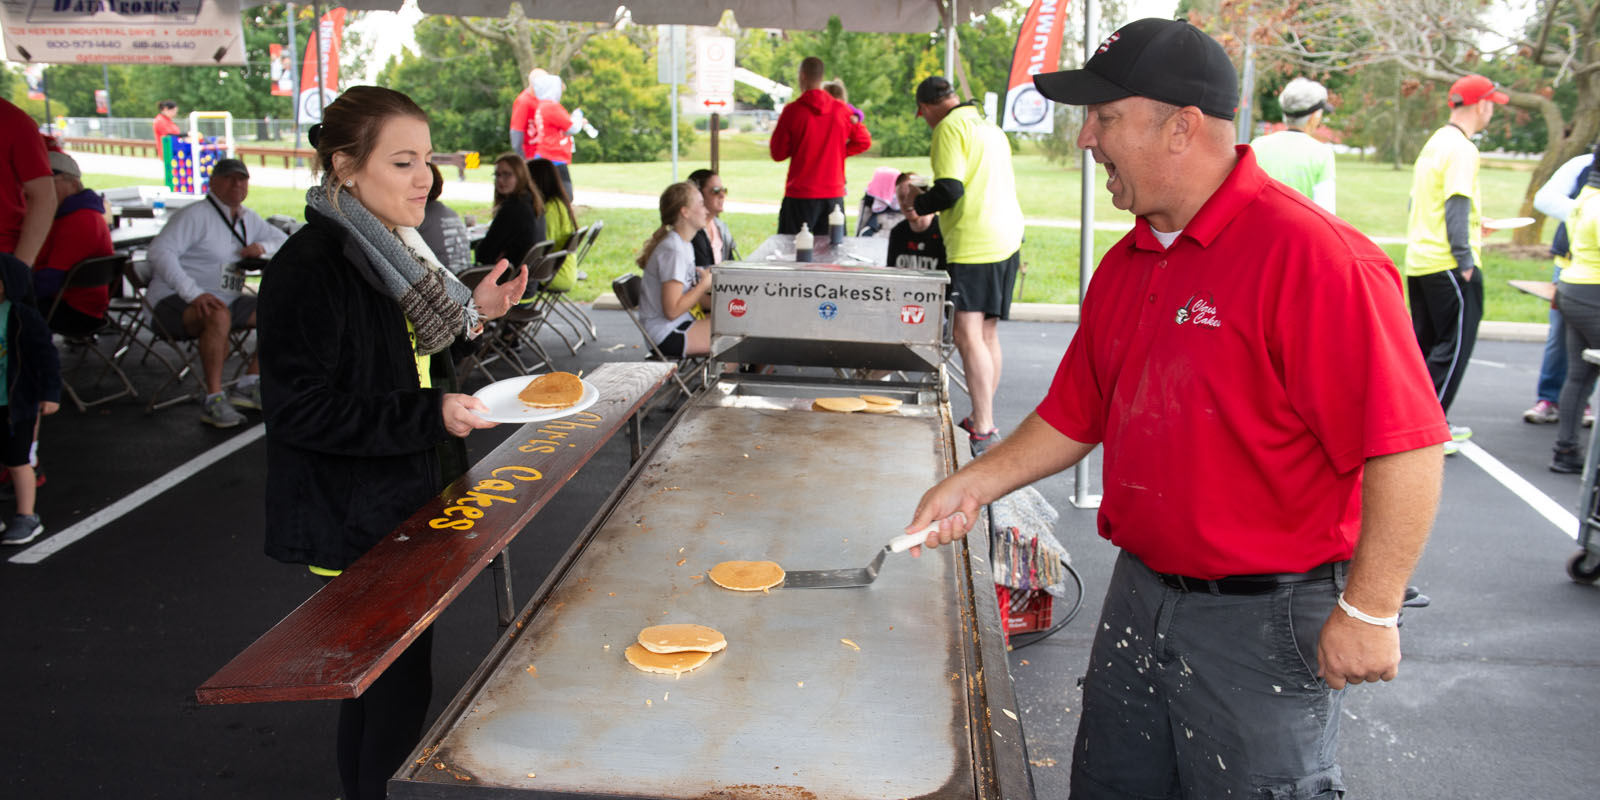 Man serving pancakes to a woman on a large grill.